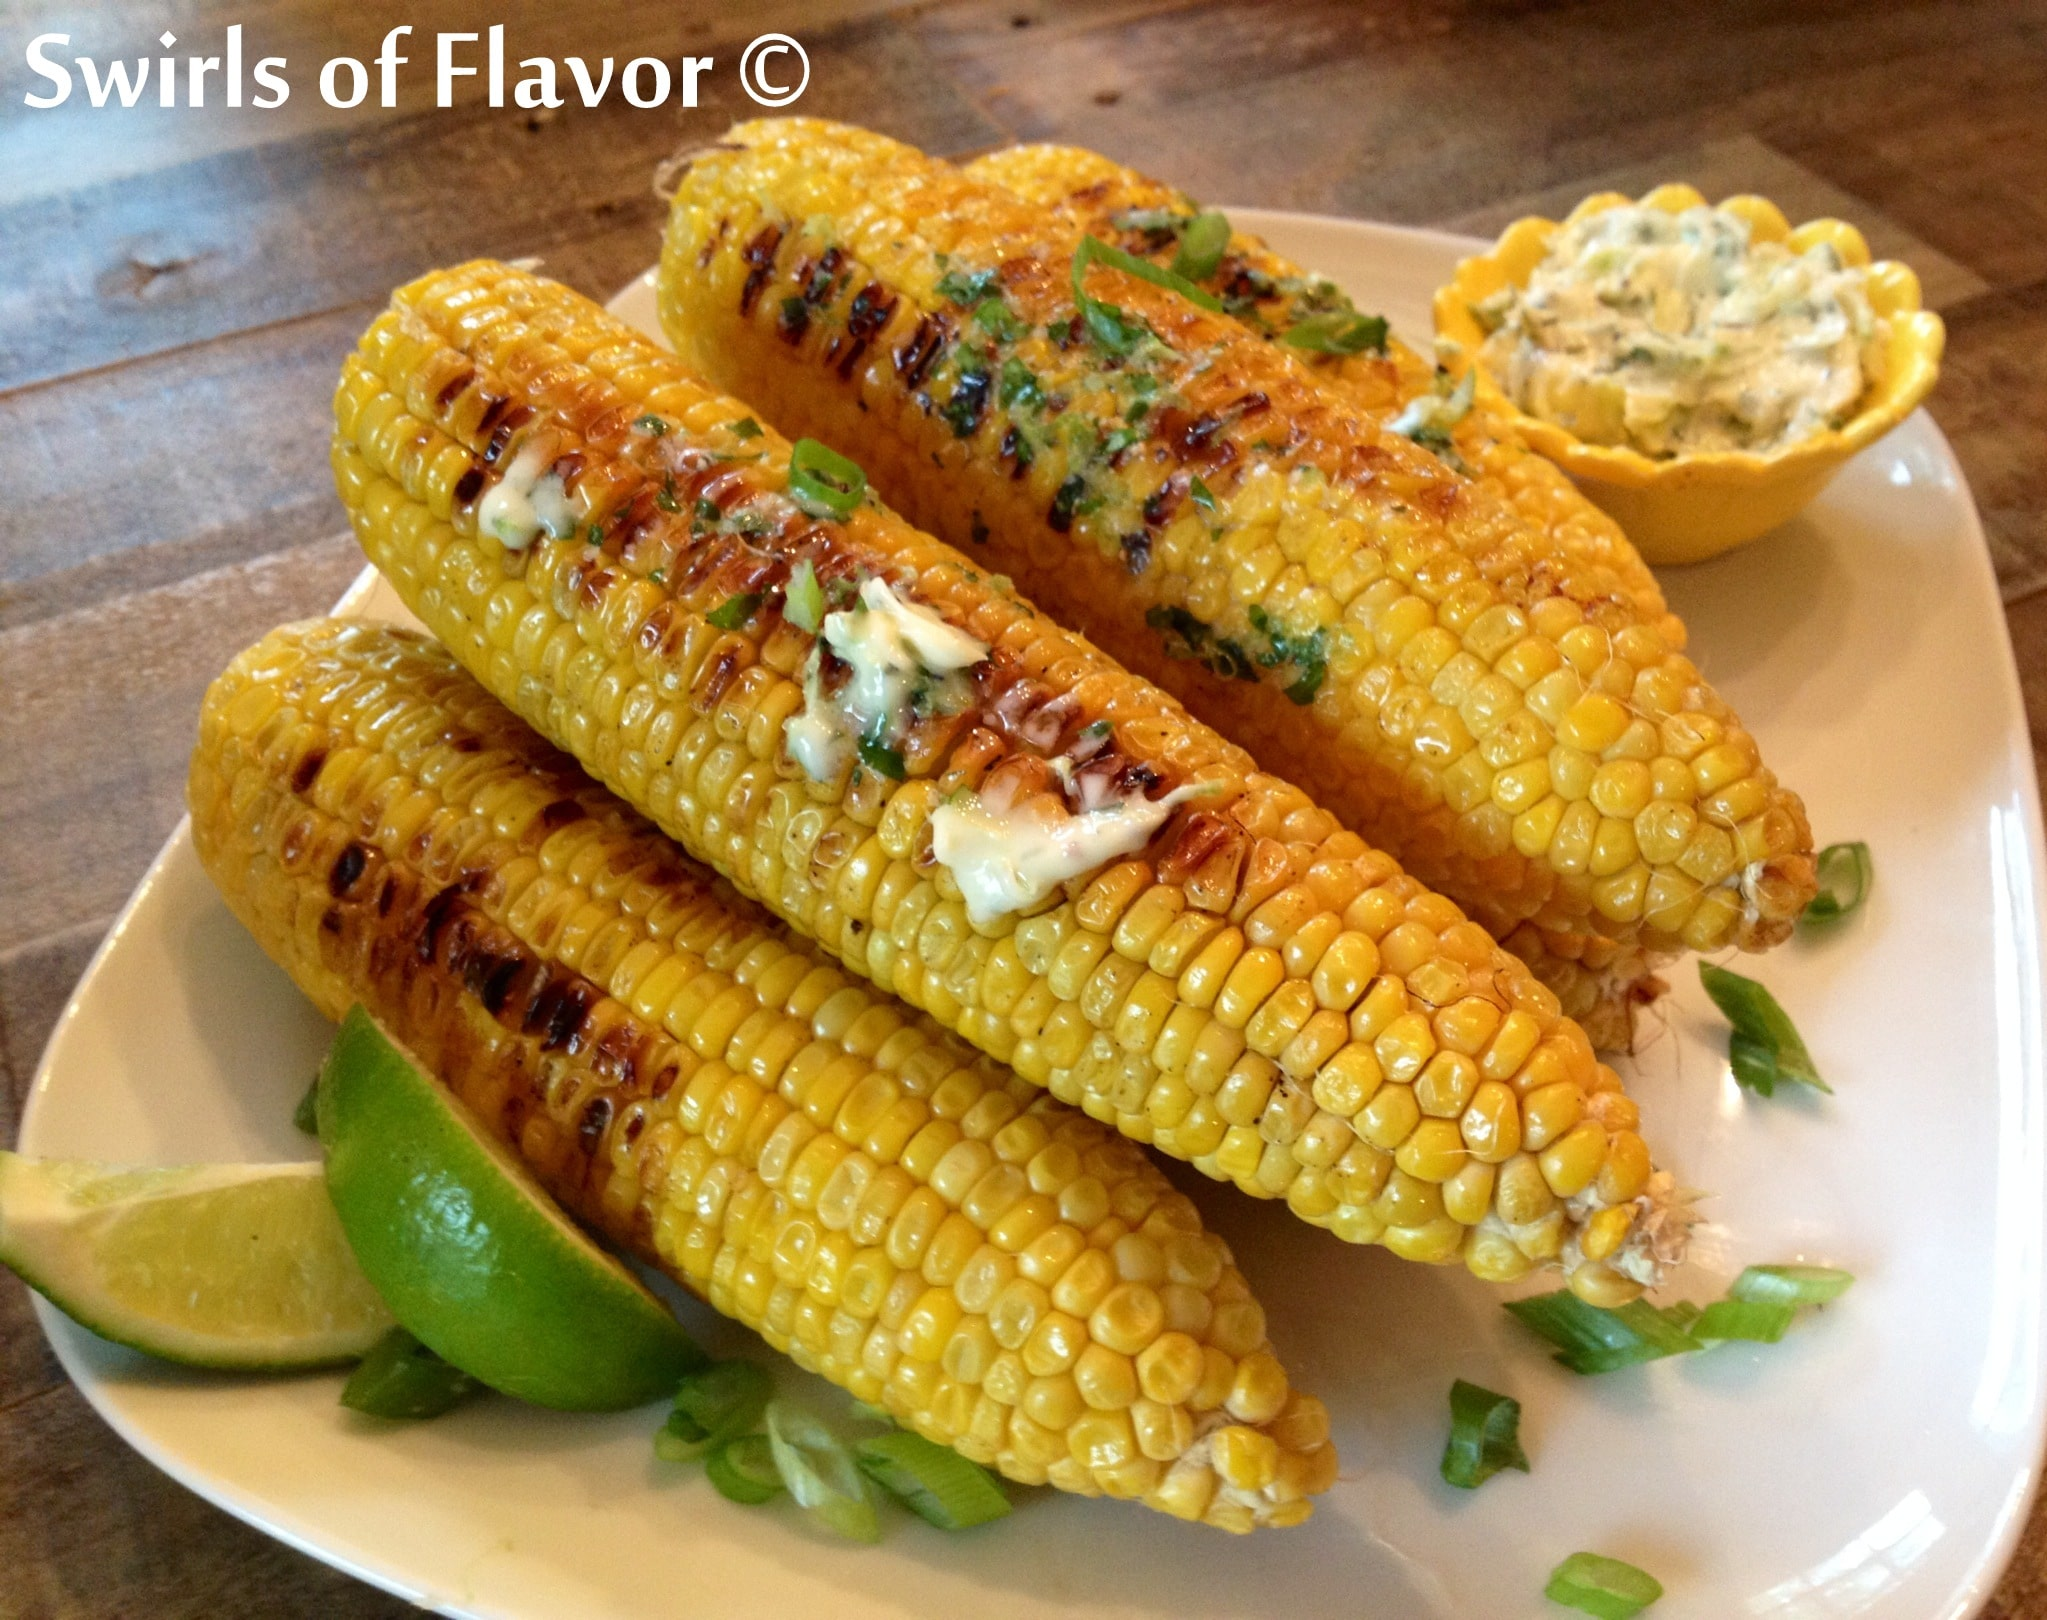 Grilled Corn on the Cob with Seasoned Butter